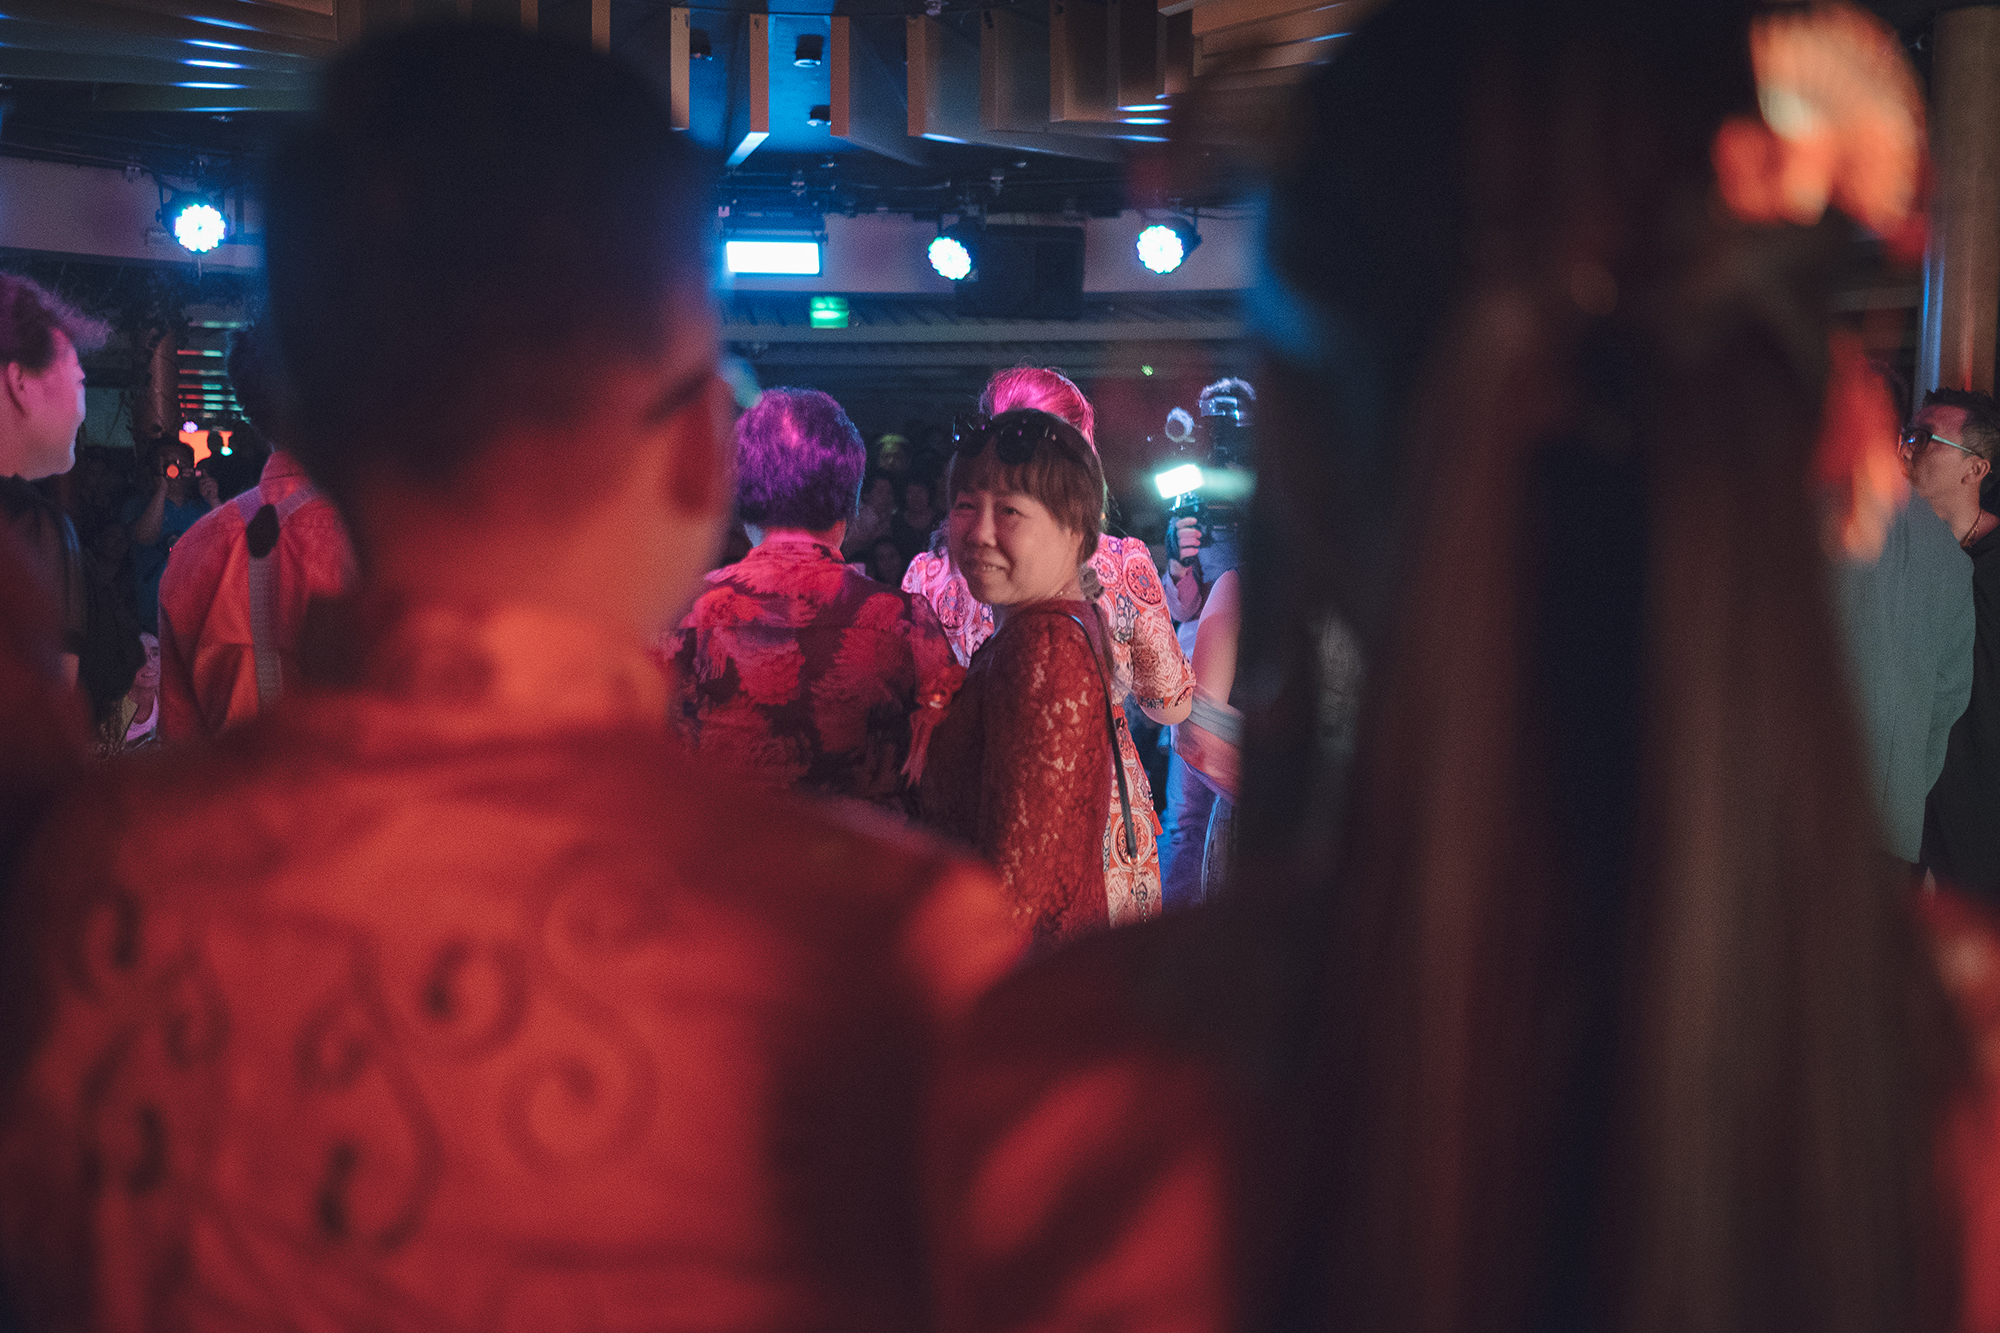 Hesitating at first, Mrs. Zheng finally decides to go up onstage with other parents to give blessings in front of the guests. She looks back at Chen and Yang.